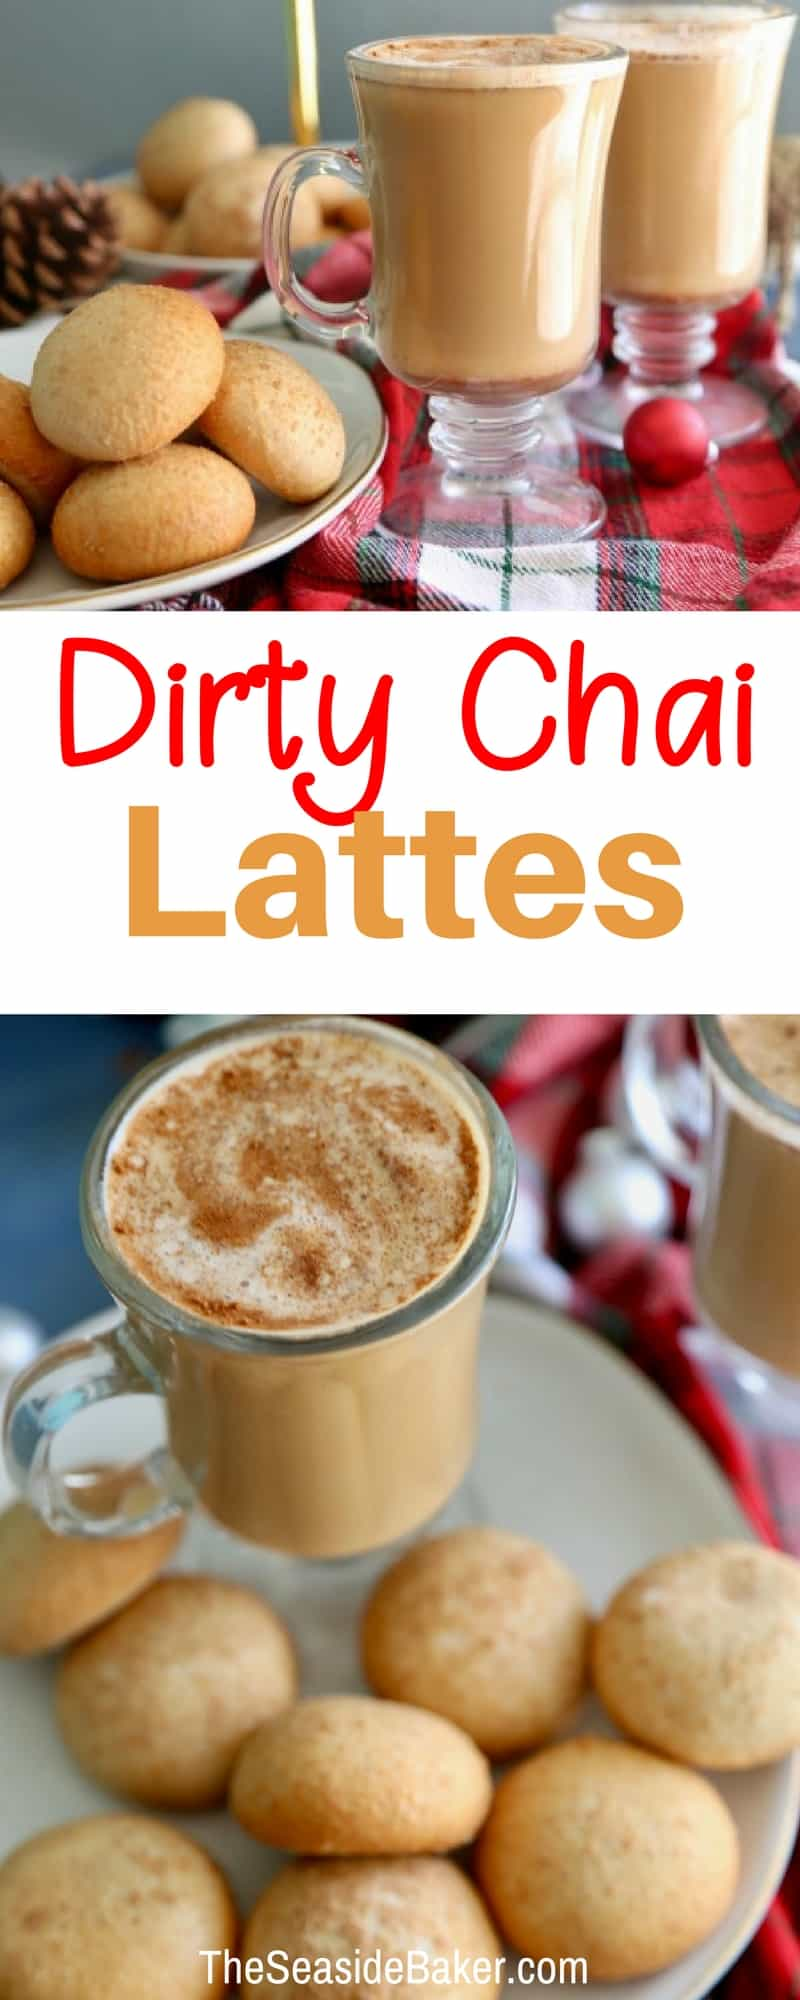 Dirty Chai Lattes